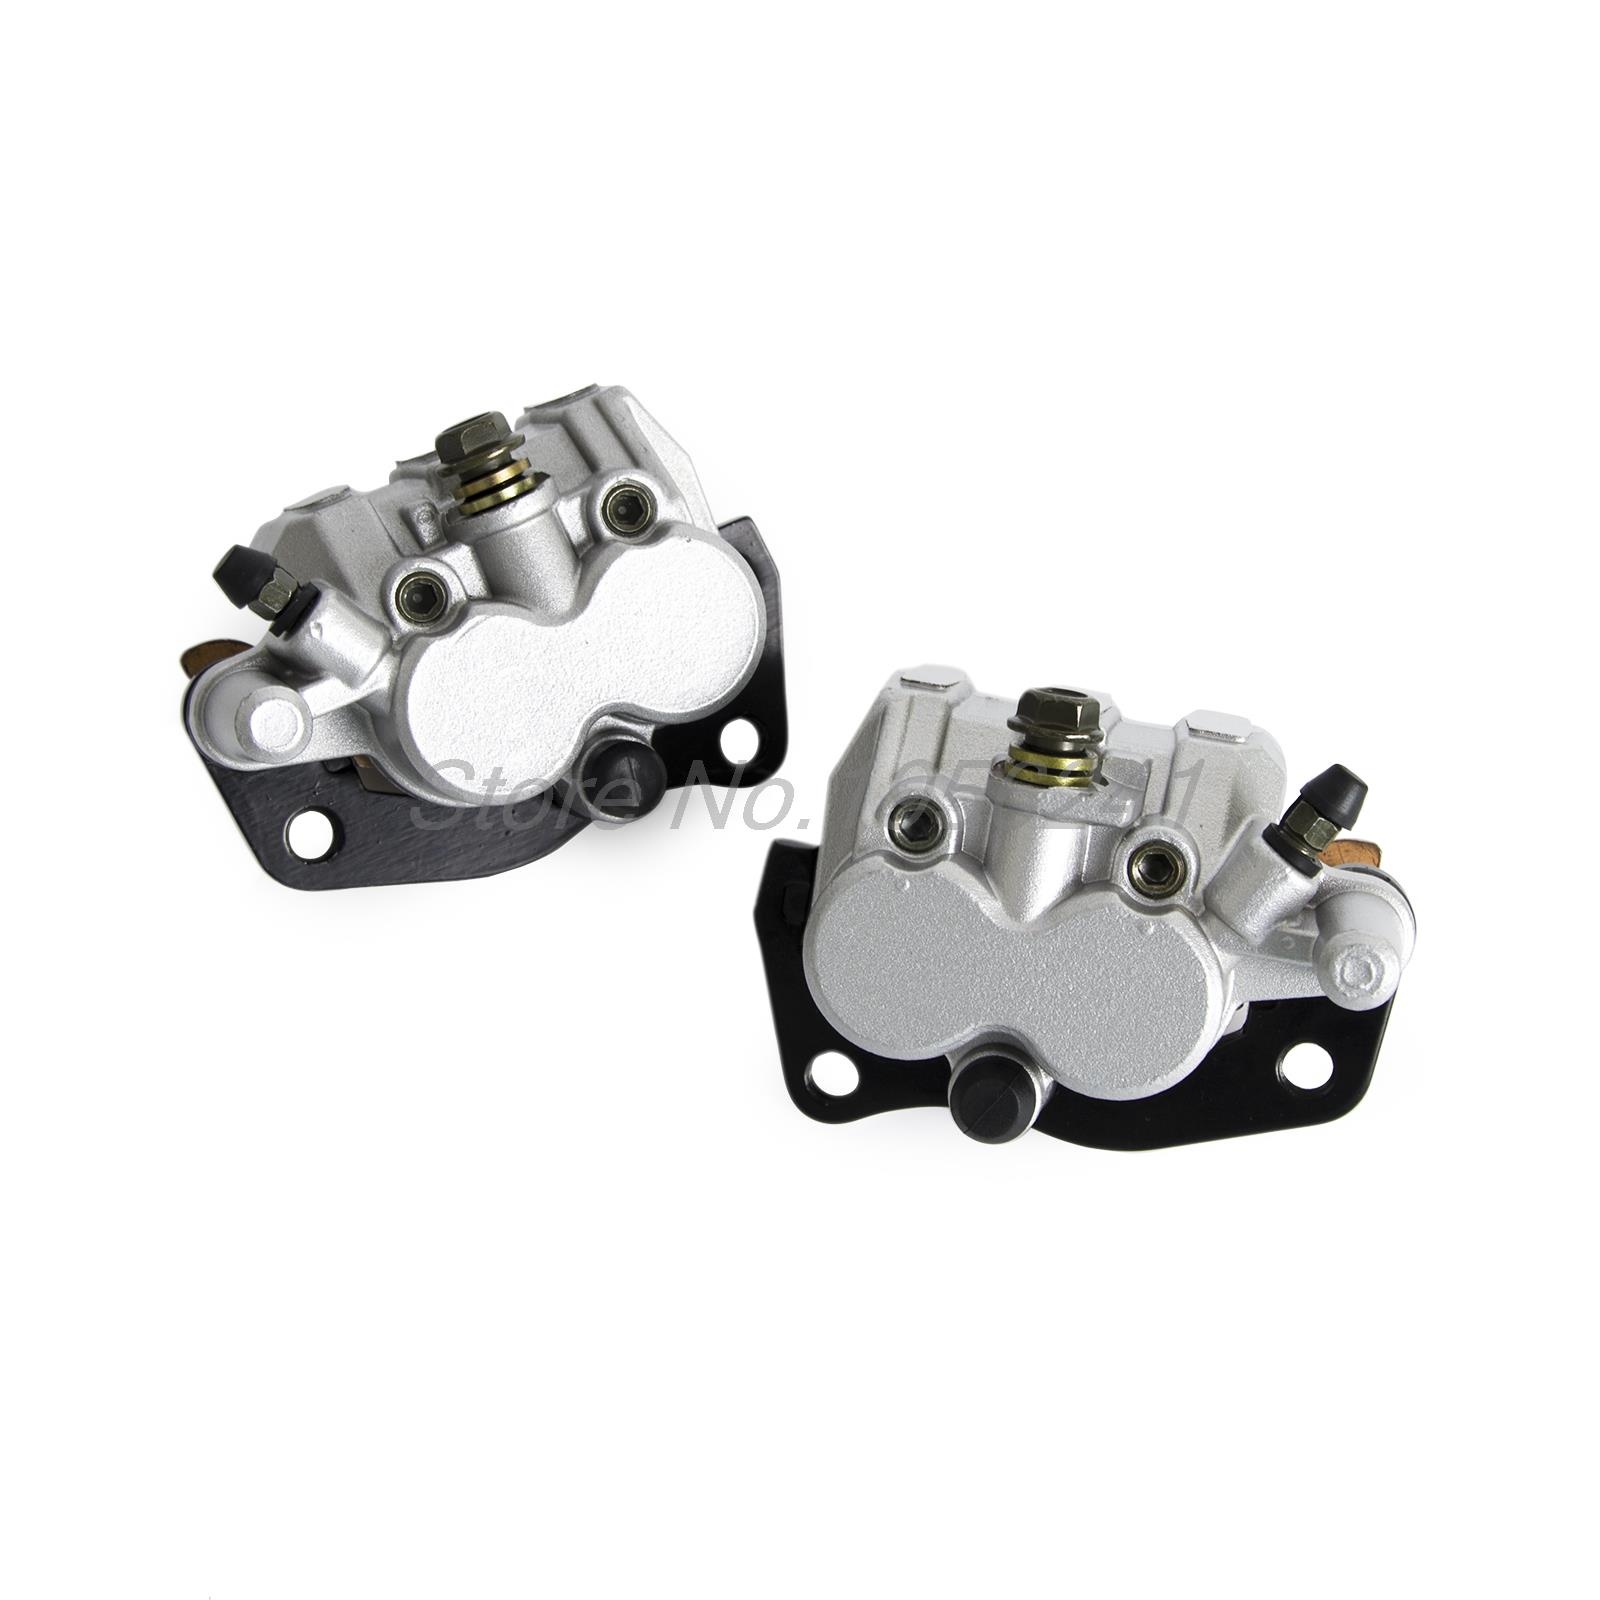 Front Right & Left Brake Caliper With Pads For Suzuki Burgman 400 AN400 2007 2008 2009 2010 2011 front left and right brake caliper suit for atv xplorer 250 400 1999 2002 4x4